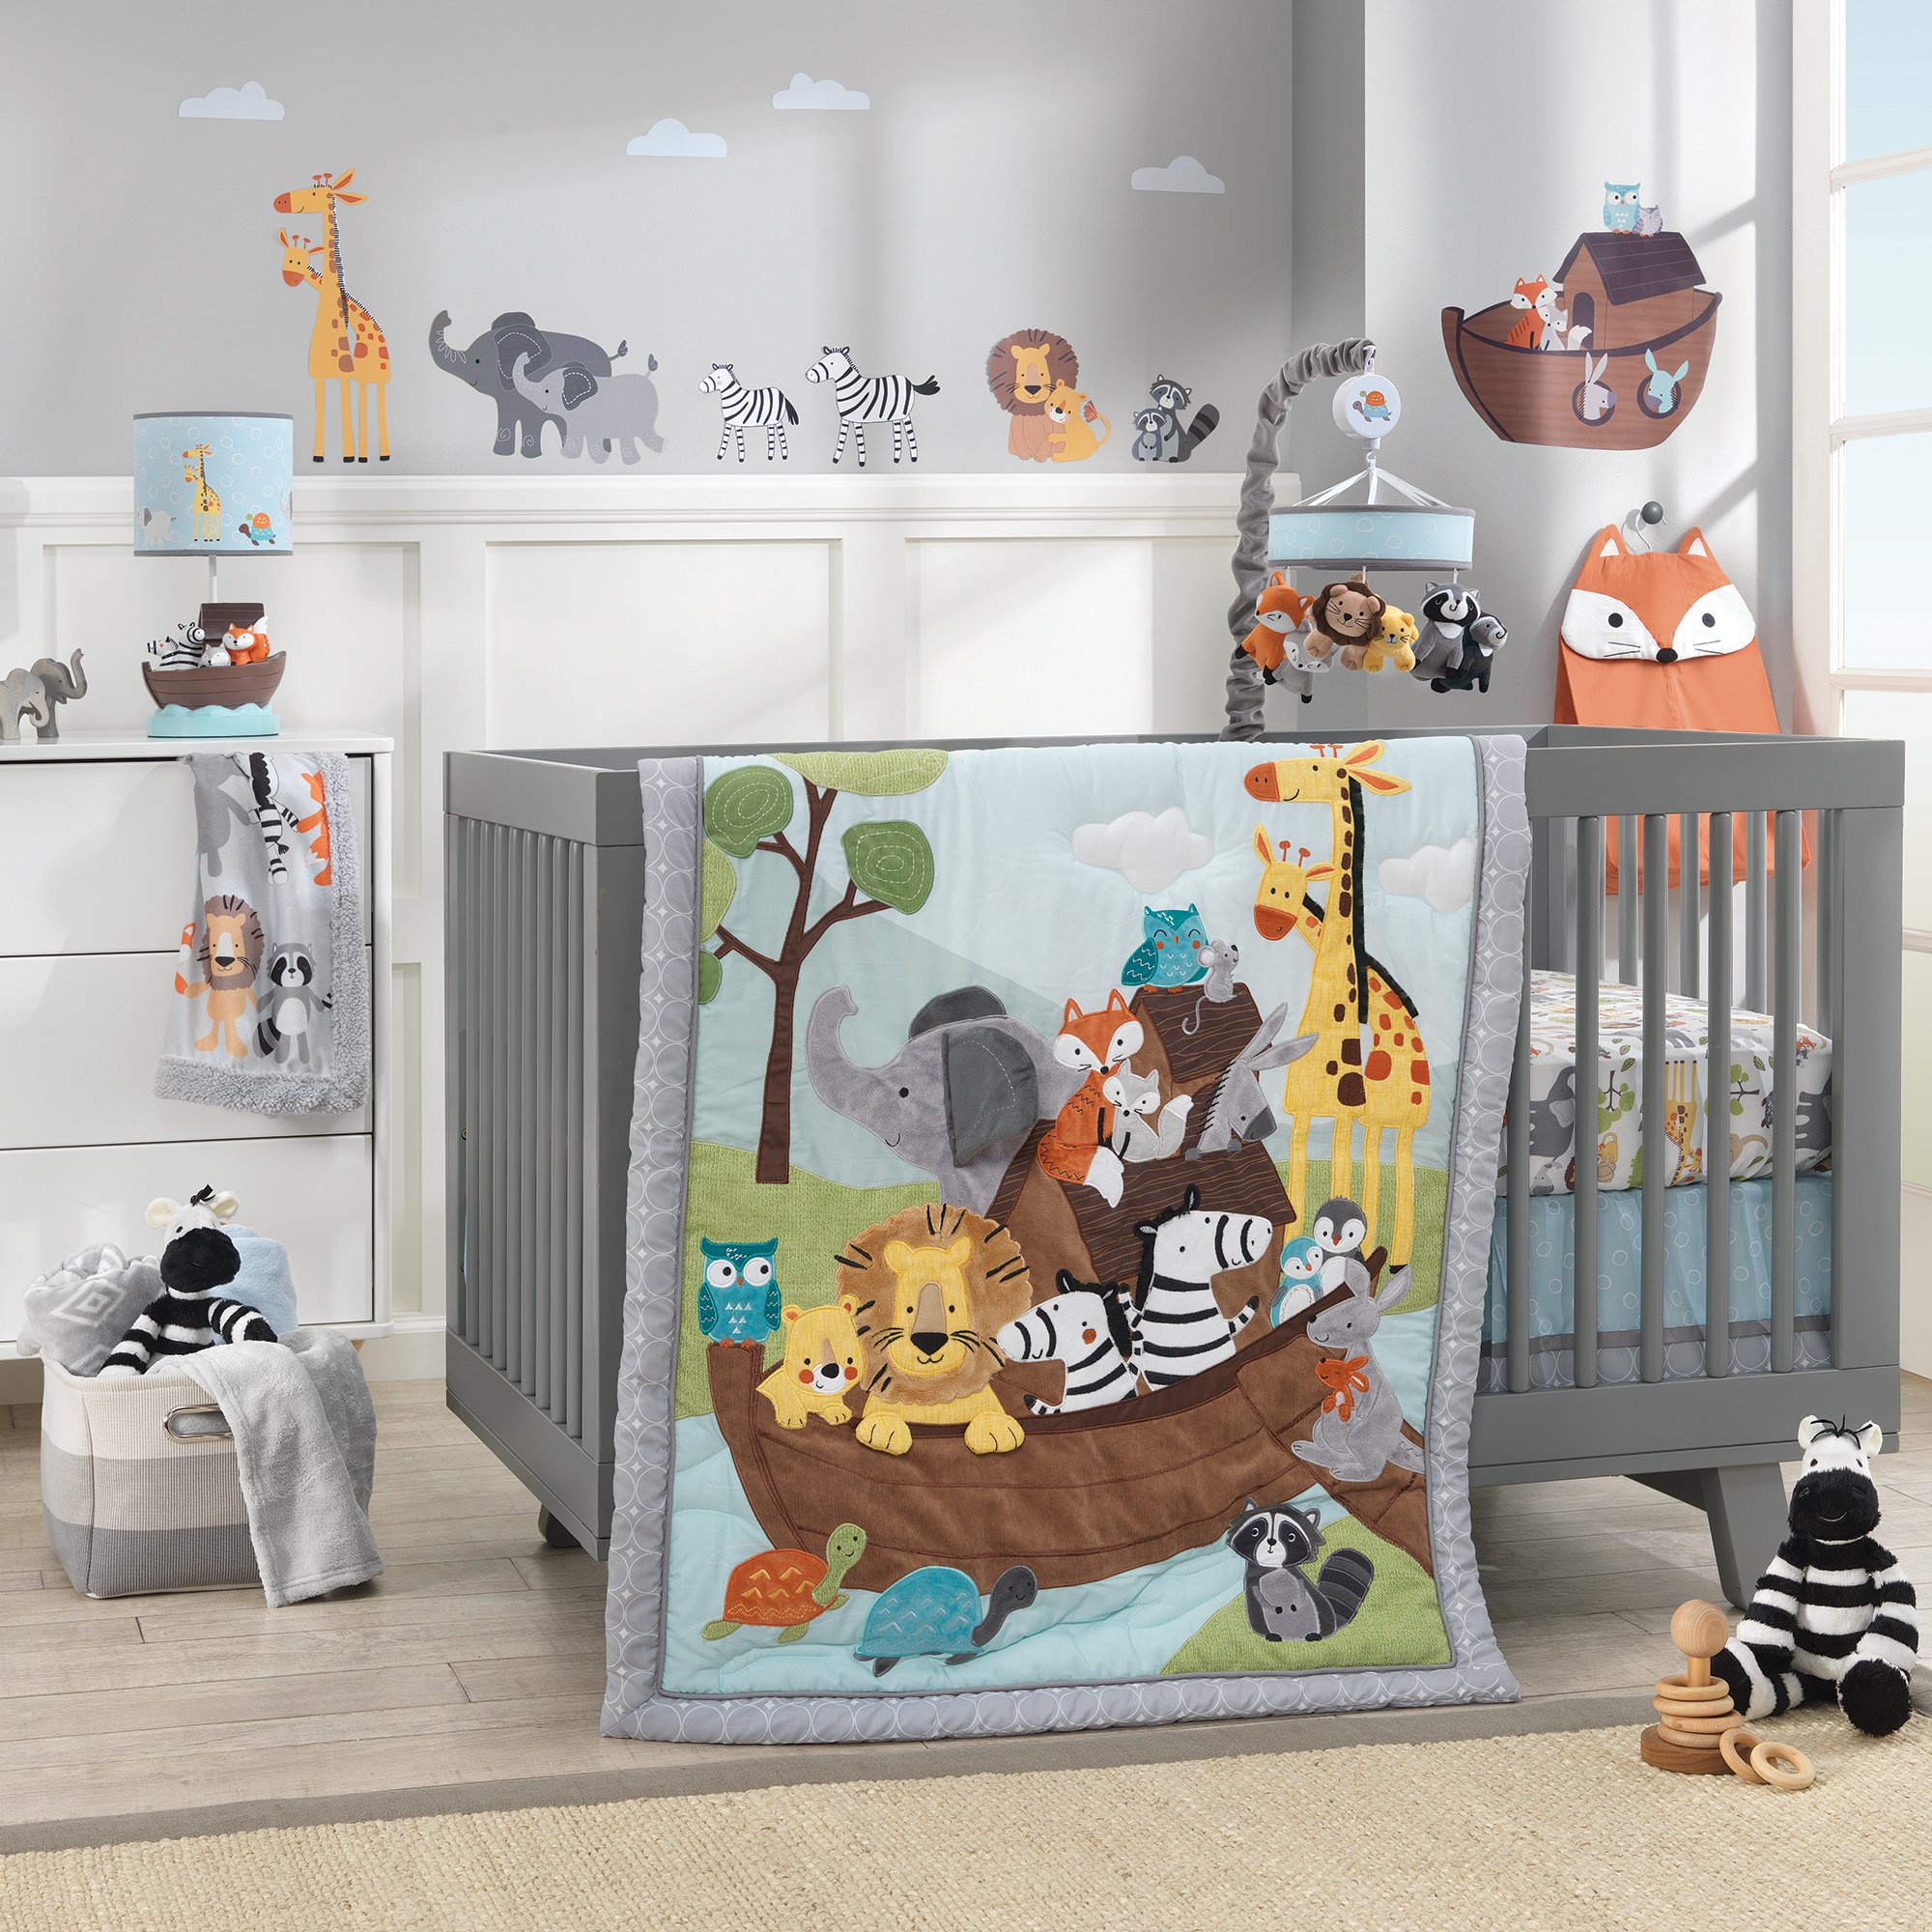 Lambs & Ivy Two of A Kind Noah'S Ark Animals 4 Piece Crib Bedding Set, Blue/Gray